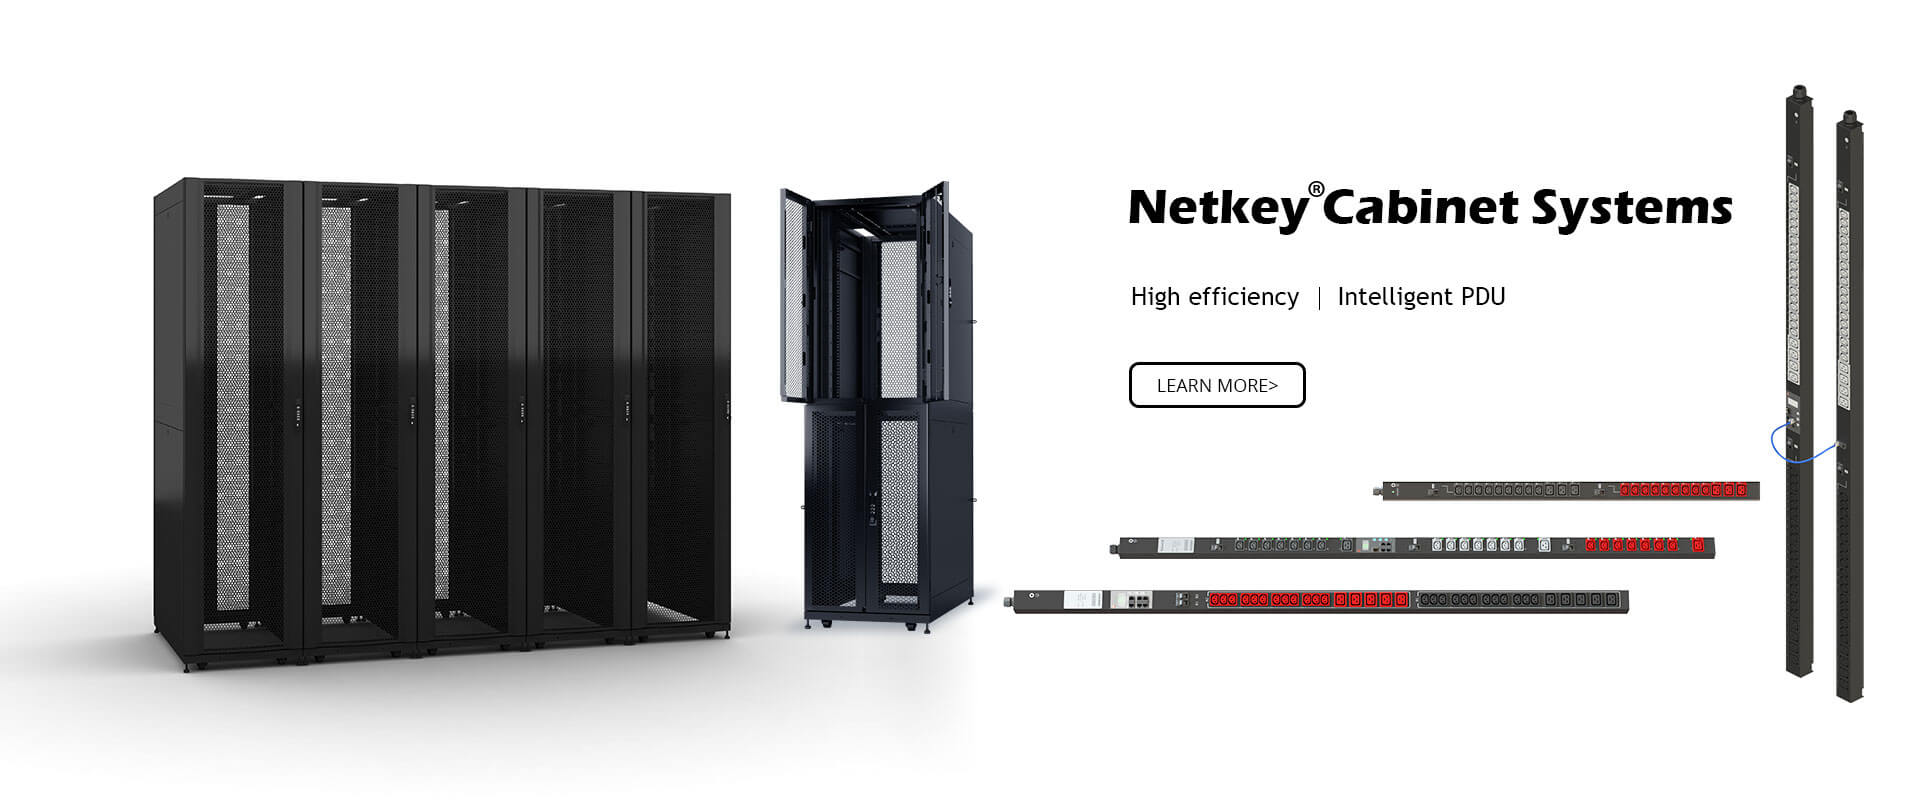 Netkey Cabinet Systems